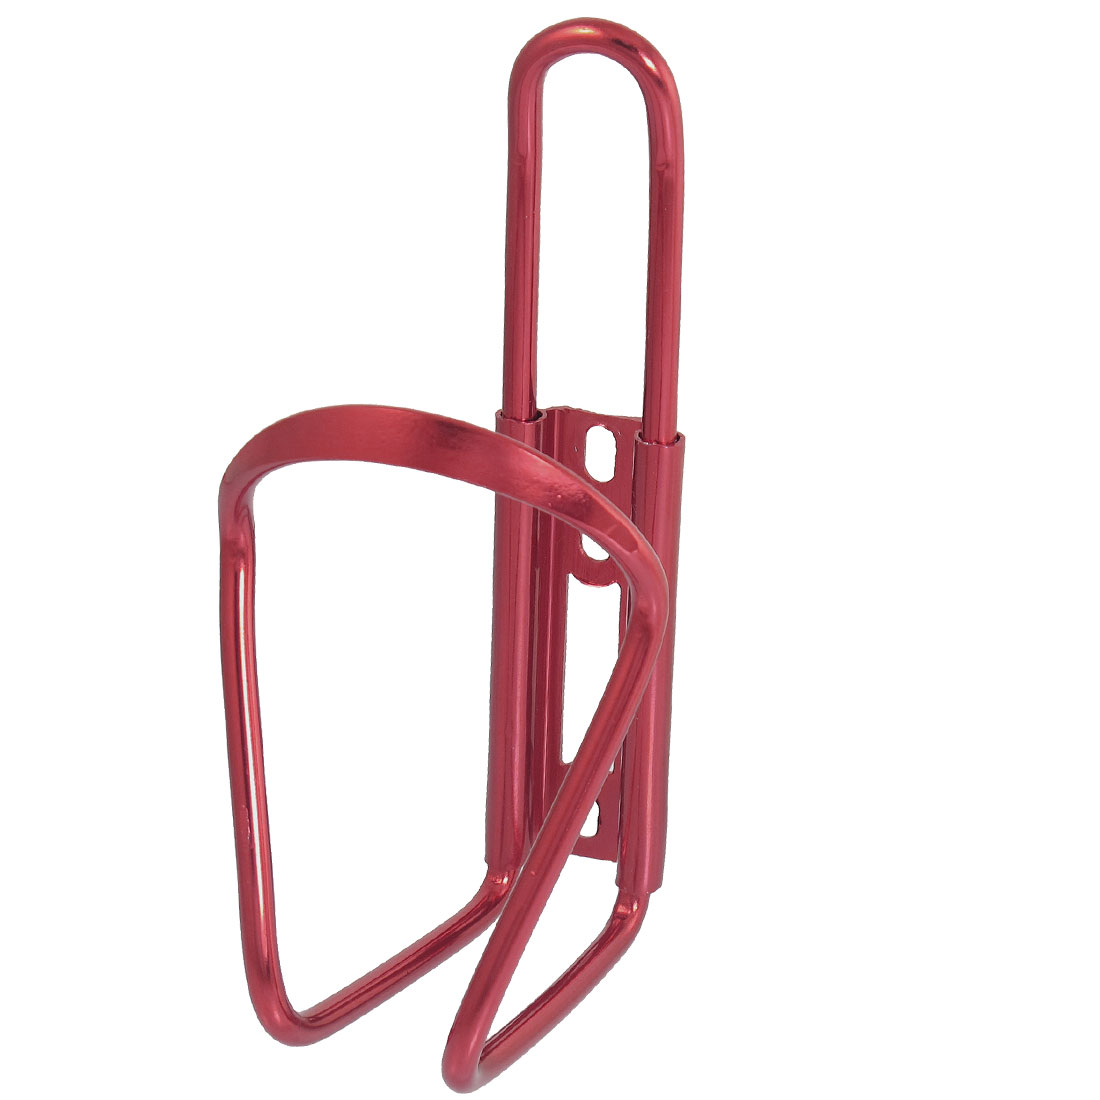 Unique Bargains Aluminum Alloy Portable Mountain Cycling Bicycle Bike Water Bottle Holder Cage Red